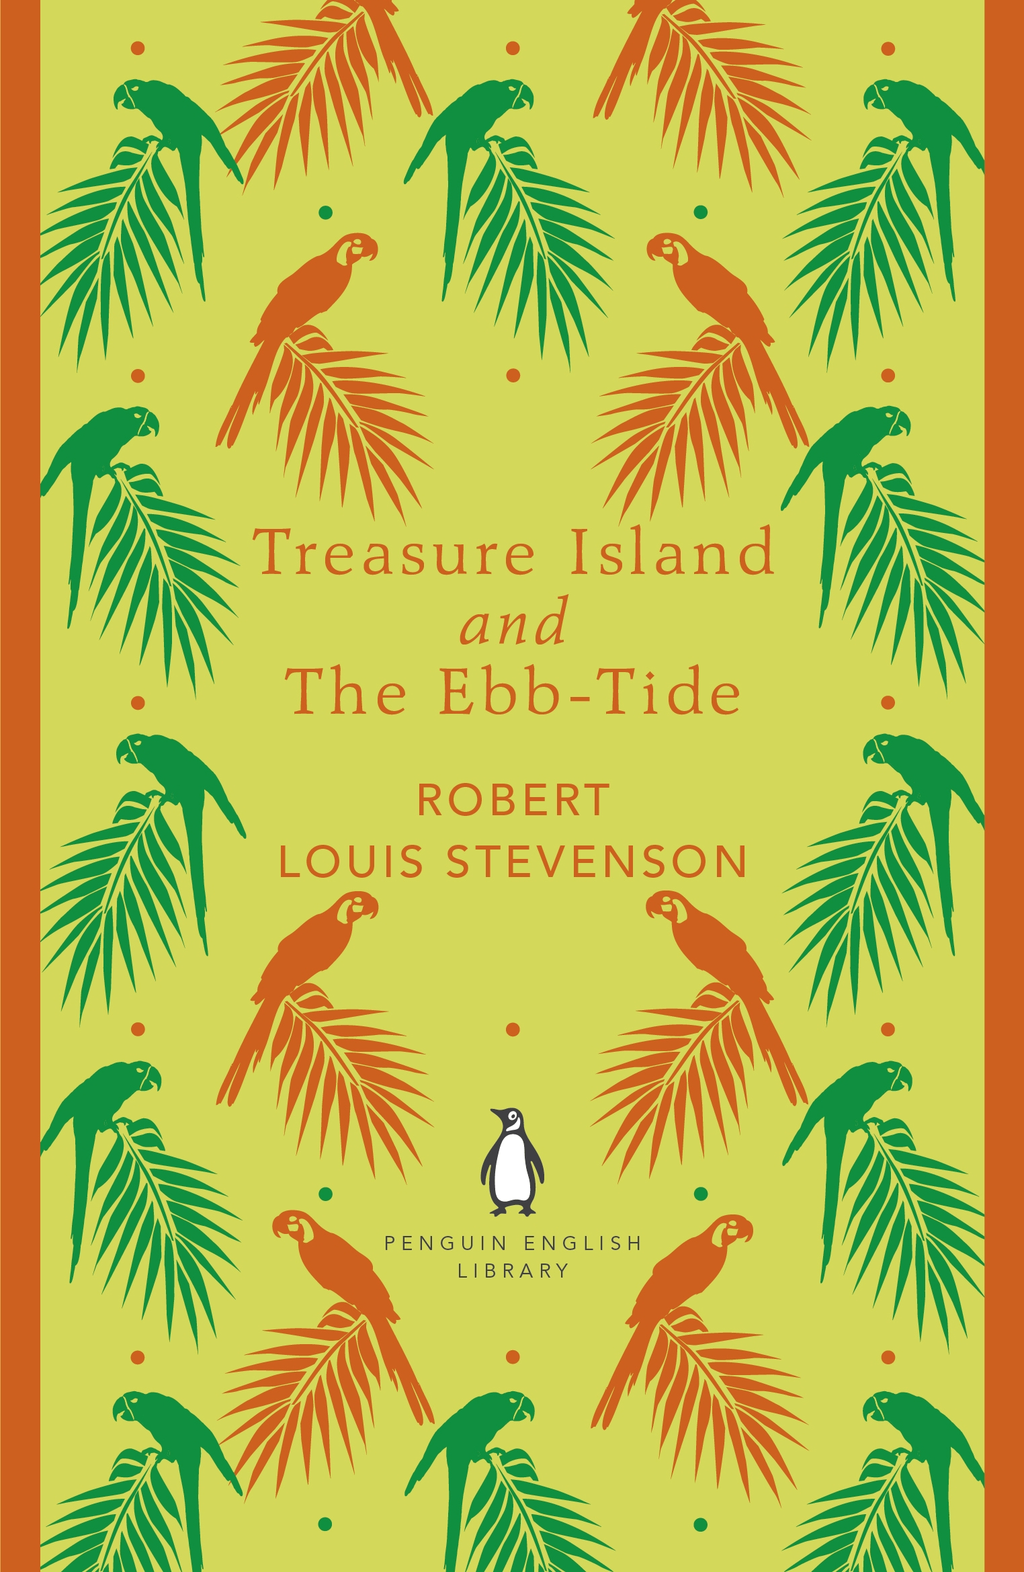 Treasure Island and The Ebb-Tide By: Robert Louis Stevenson